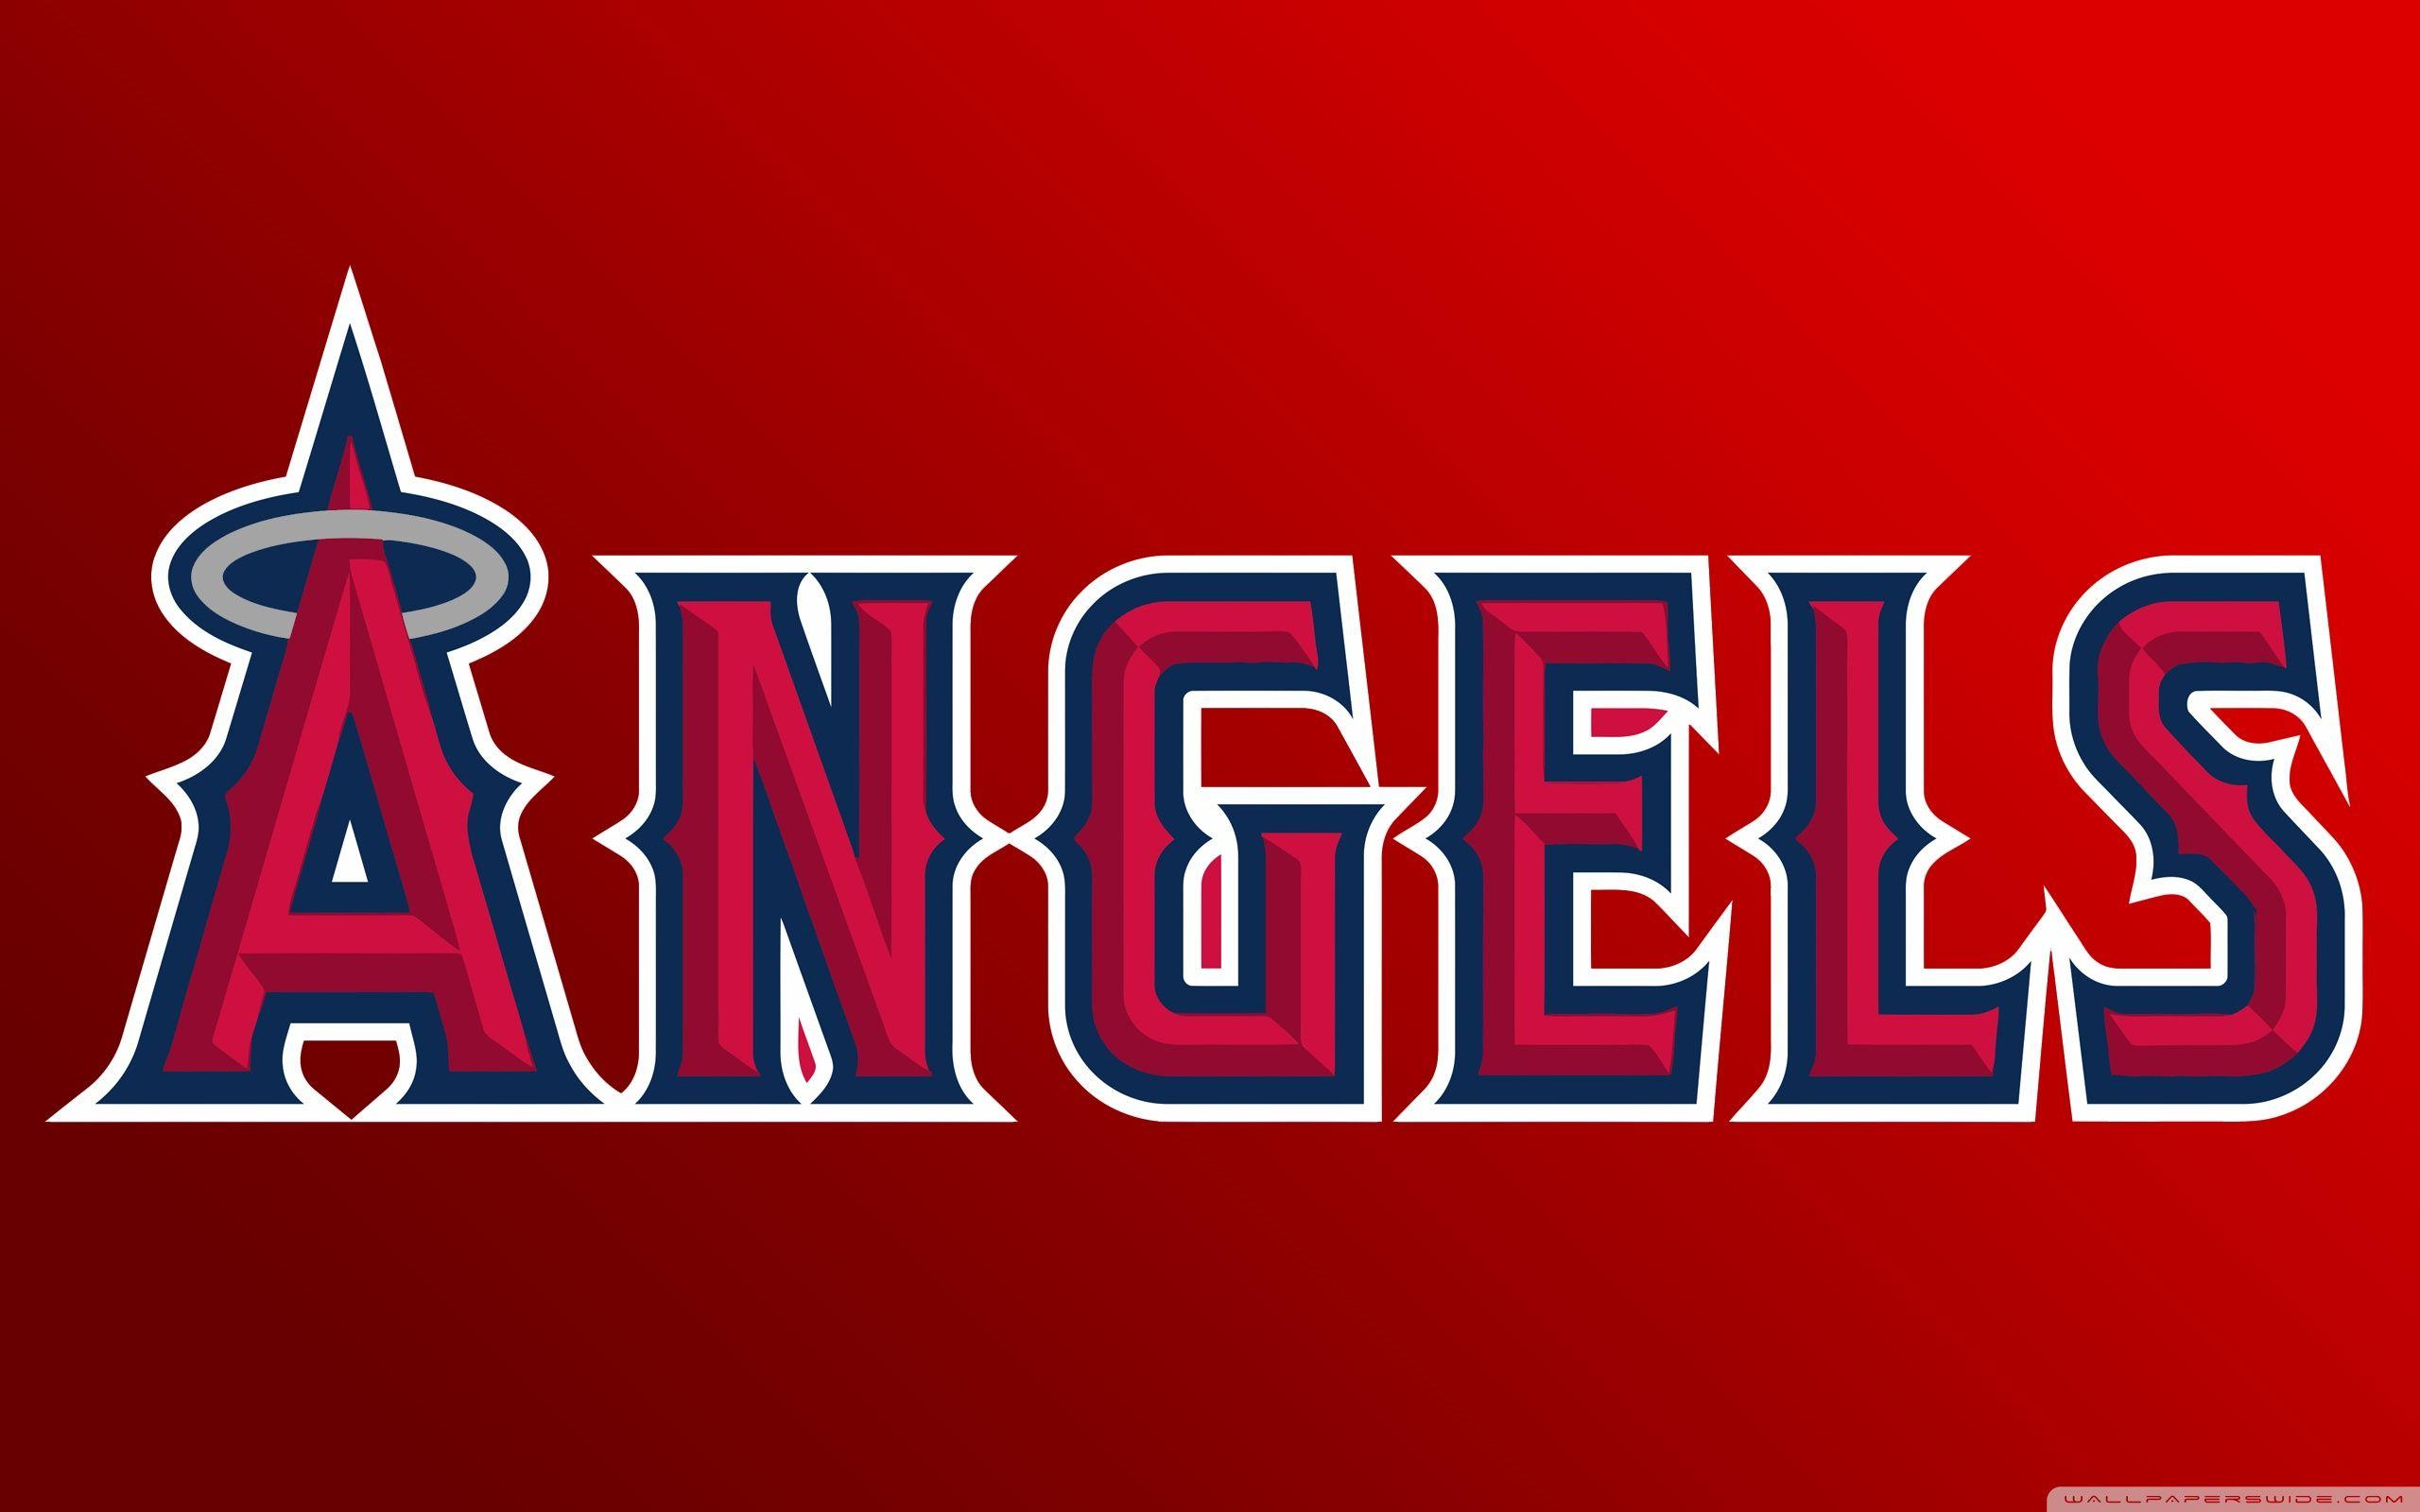 Los Angeles Angels Of Anaheim Logo Baseball ❤ 4K HD Desktop